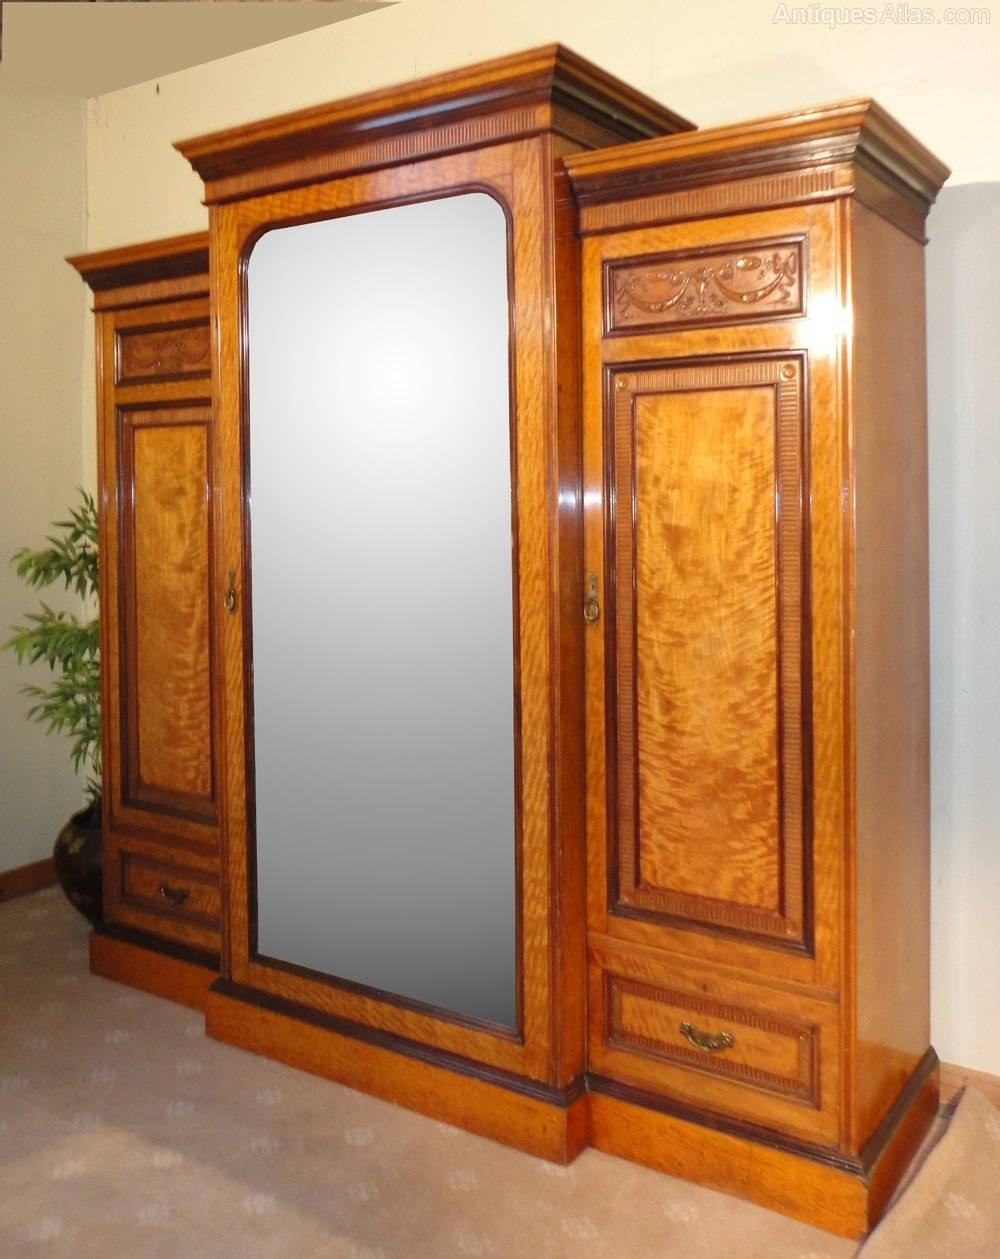 Victorian Satinwood & Rosewood Breakfront Wardrobe - Antiques Atlas with regard to Antique Breakfront Wardrobe (Image 28 of 30)